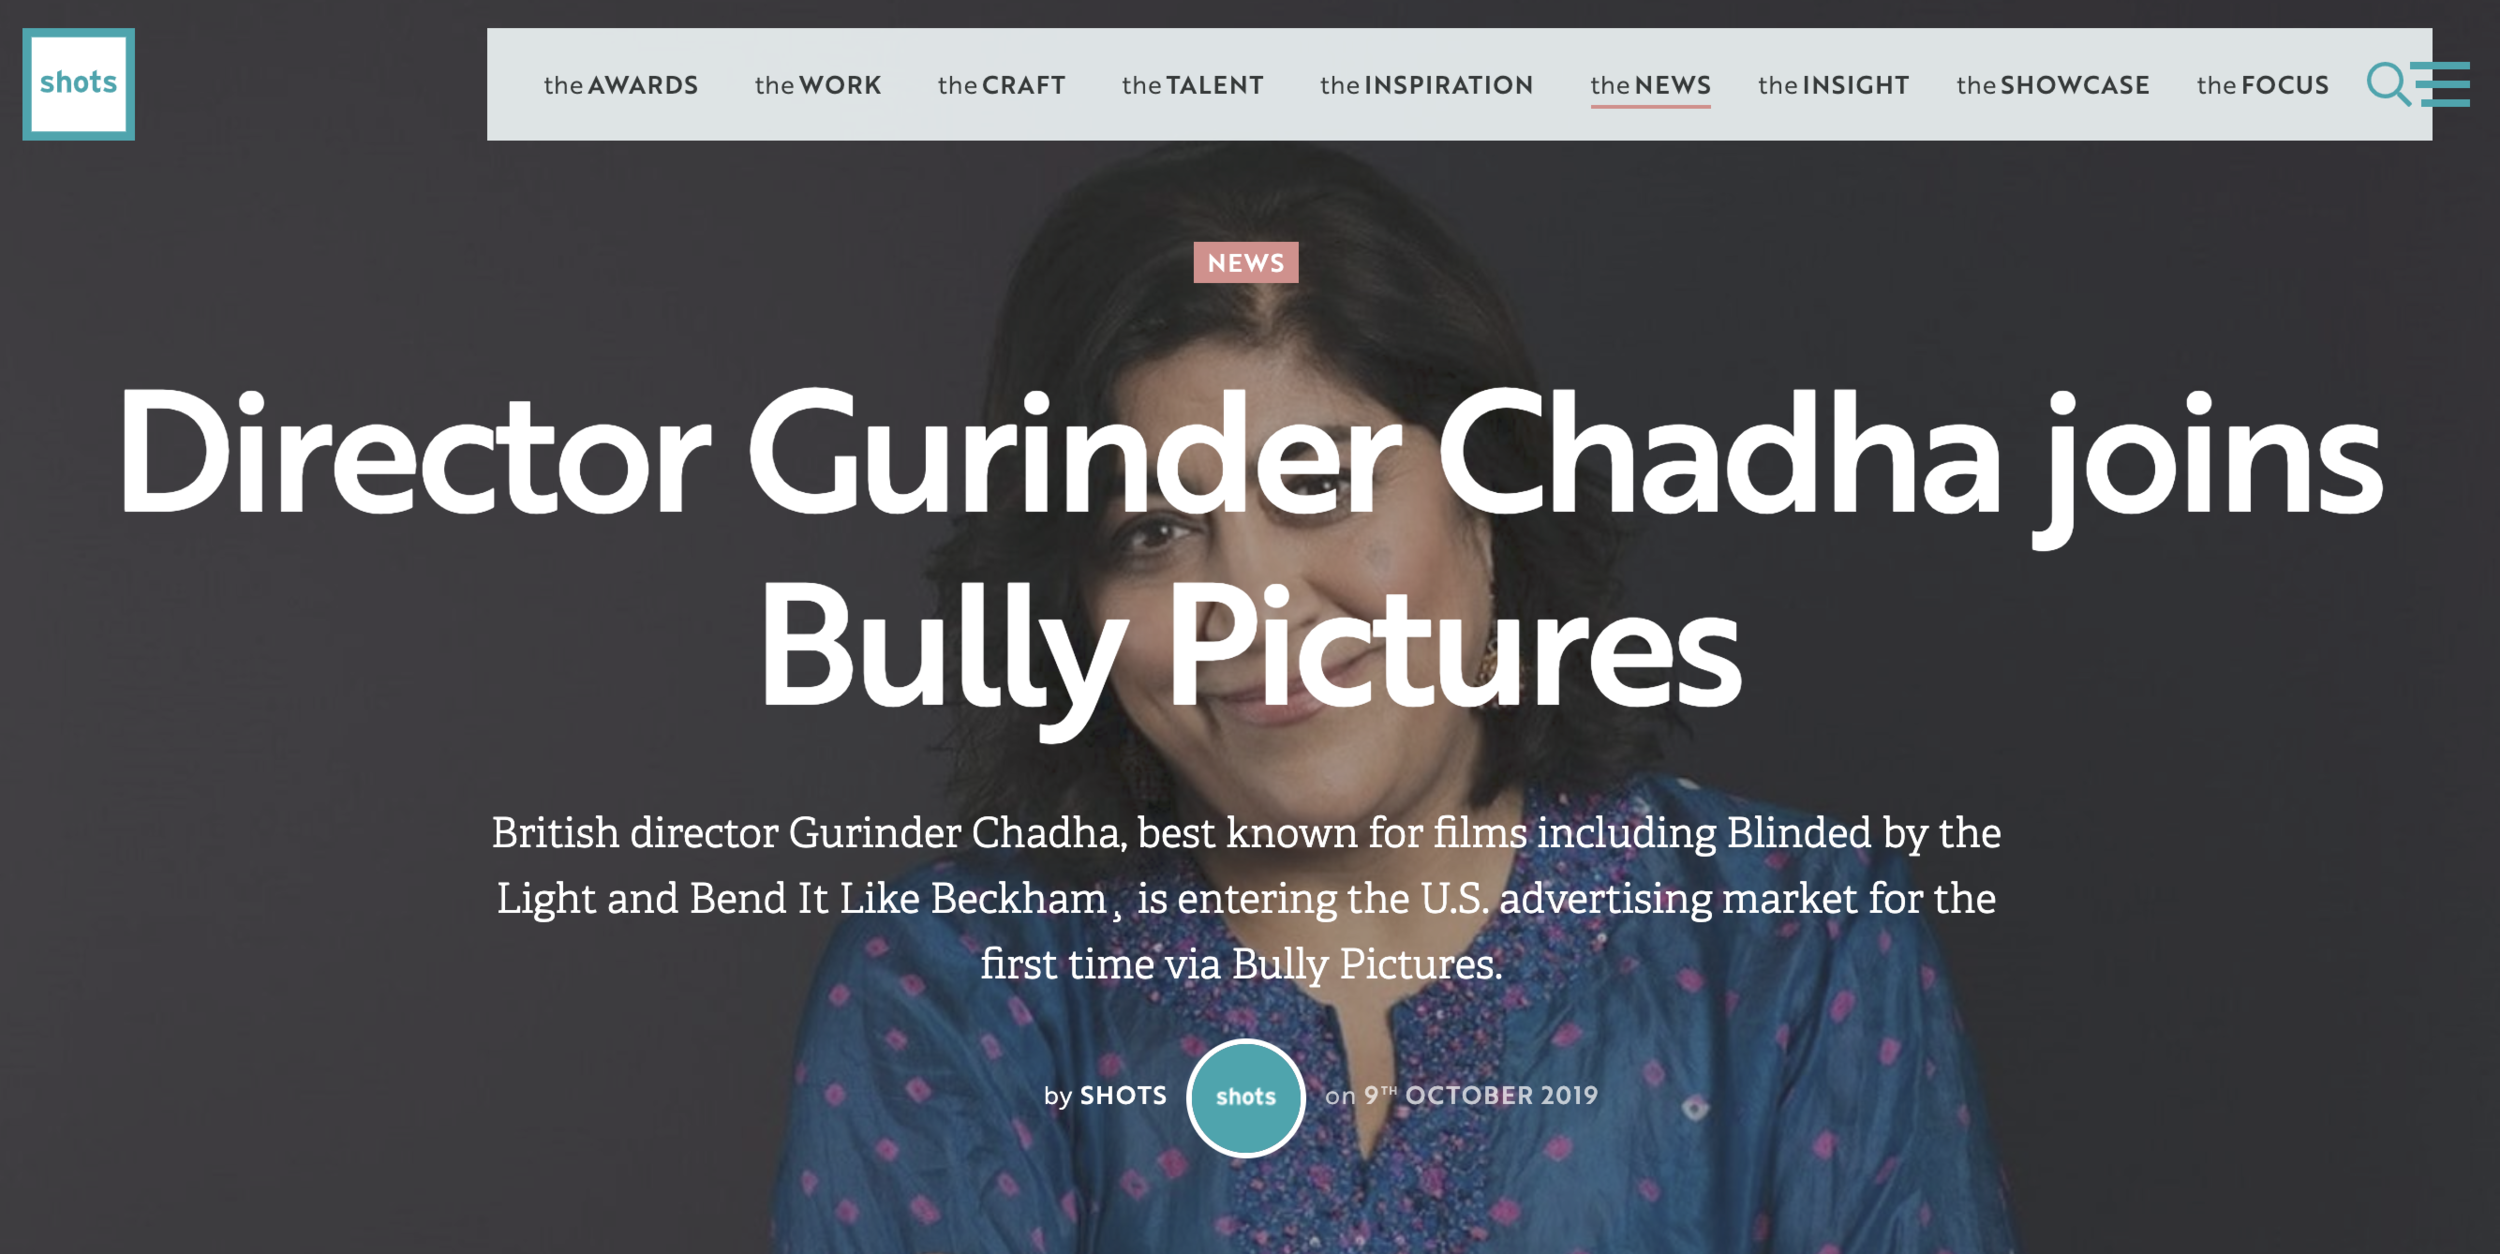 Gurinder Chadha joins Bully Pictures